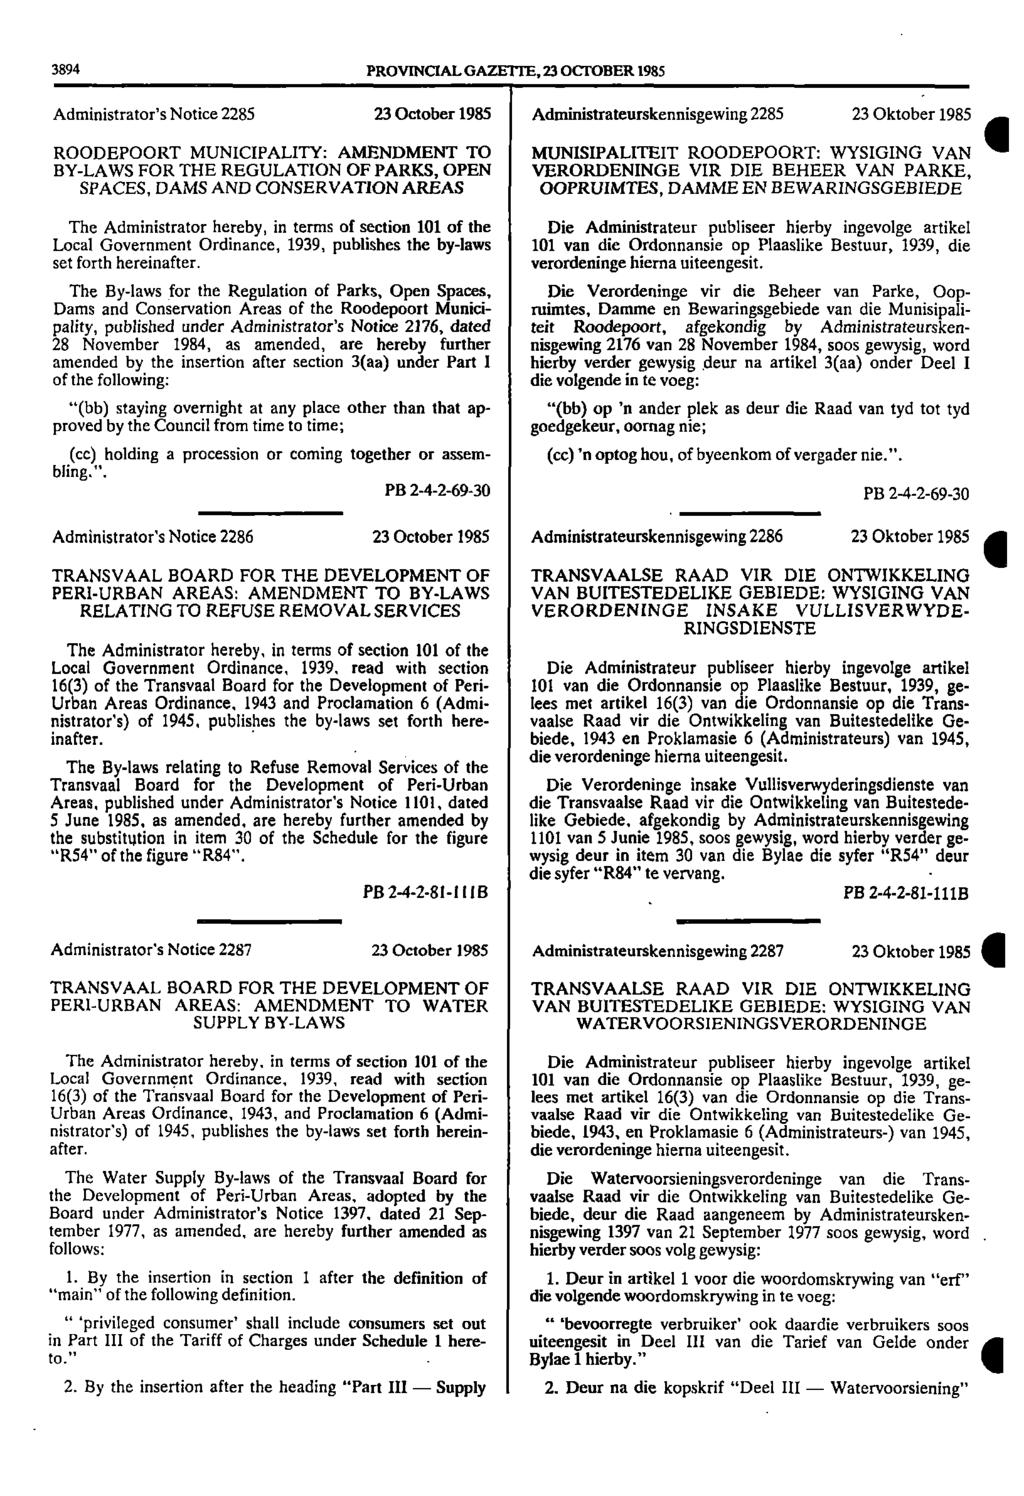 3894 PROVINCIAL GAZETTE, 23 OCTOBER 1985 Administrator's Notice 2285 23 October 1985 Administrateurskennisgewing 2285 23 Oktober 1985 ROODEPOORT MUNICIPALITY: AMENDMENT TO BYLAWS FOR THE REGULATION